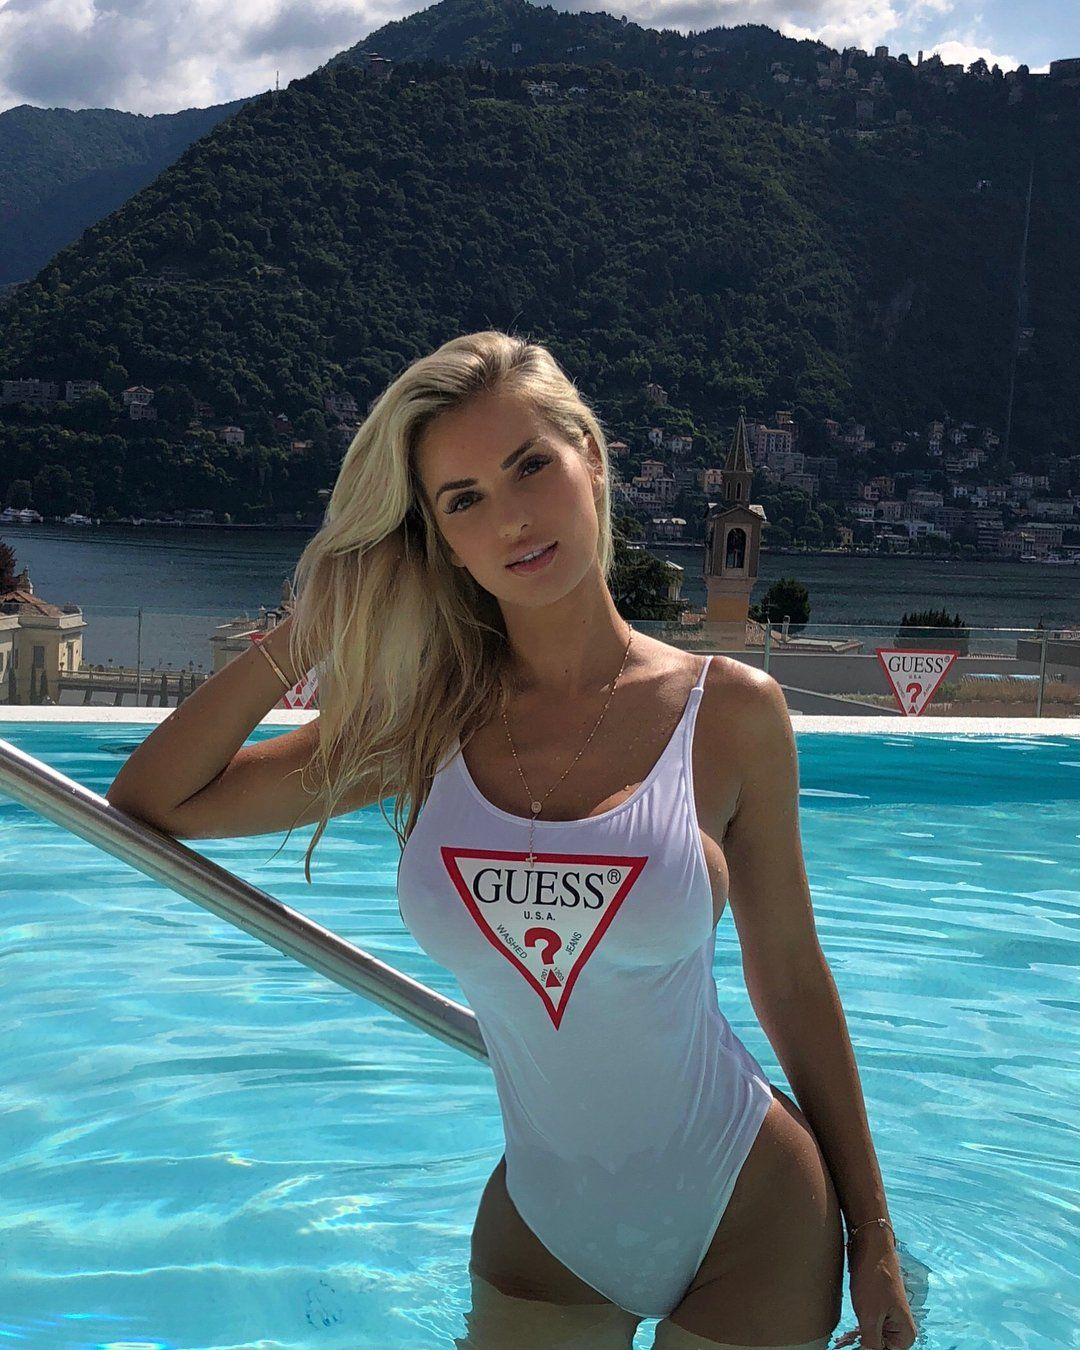 "a9c4f82a16 Leanna Bartlett (@leannabartlett) on Instagram: ""One of the most beautiful  places on Earth in #Italy #LoveGuess #DestinationGUESS"""